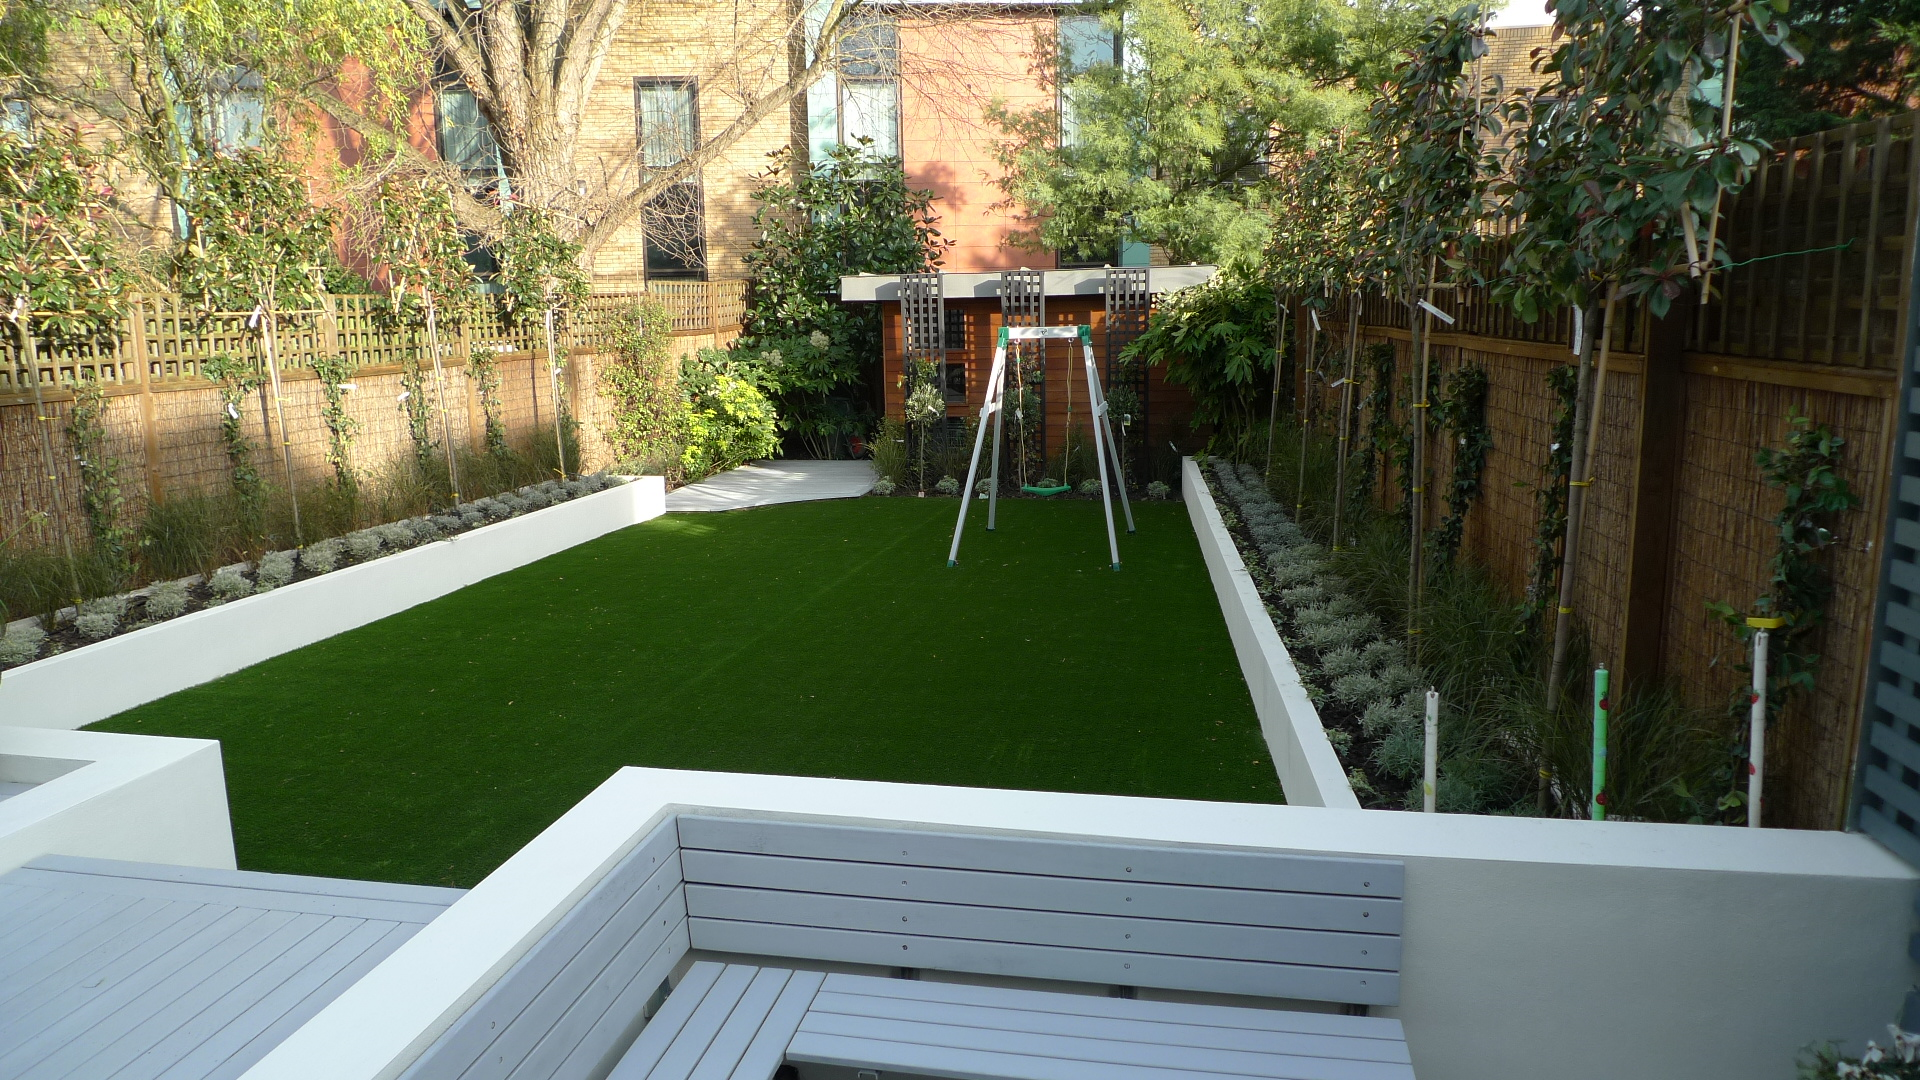 Modern garden design ideas london london garden design for Garden landscape design